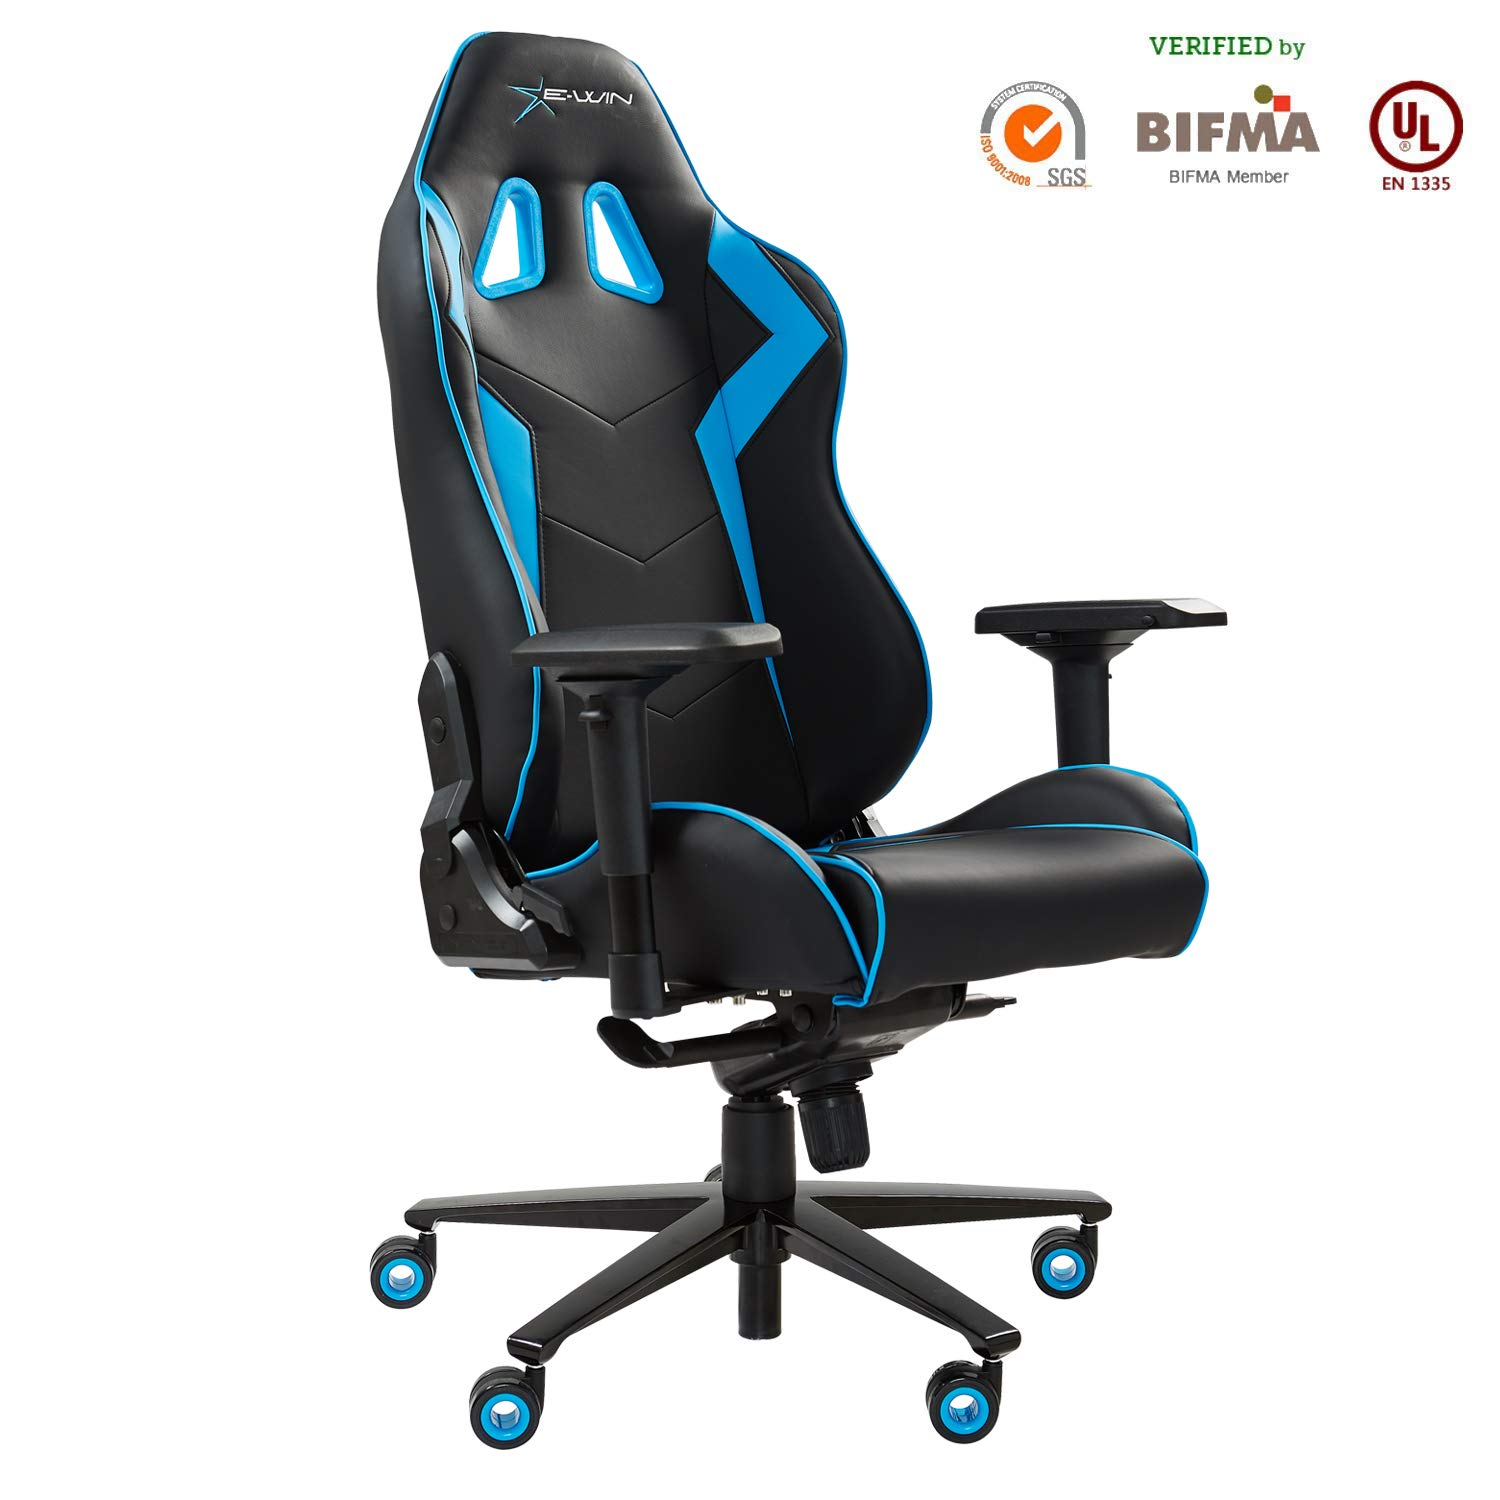 Ewin Gaming Chair 4D Armrests Memory Foam PU Leather with Headrest Lumbar Support Ergonomic High-Back Racing Computer Office Chair Champion Series Blue